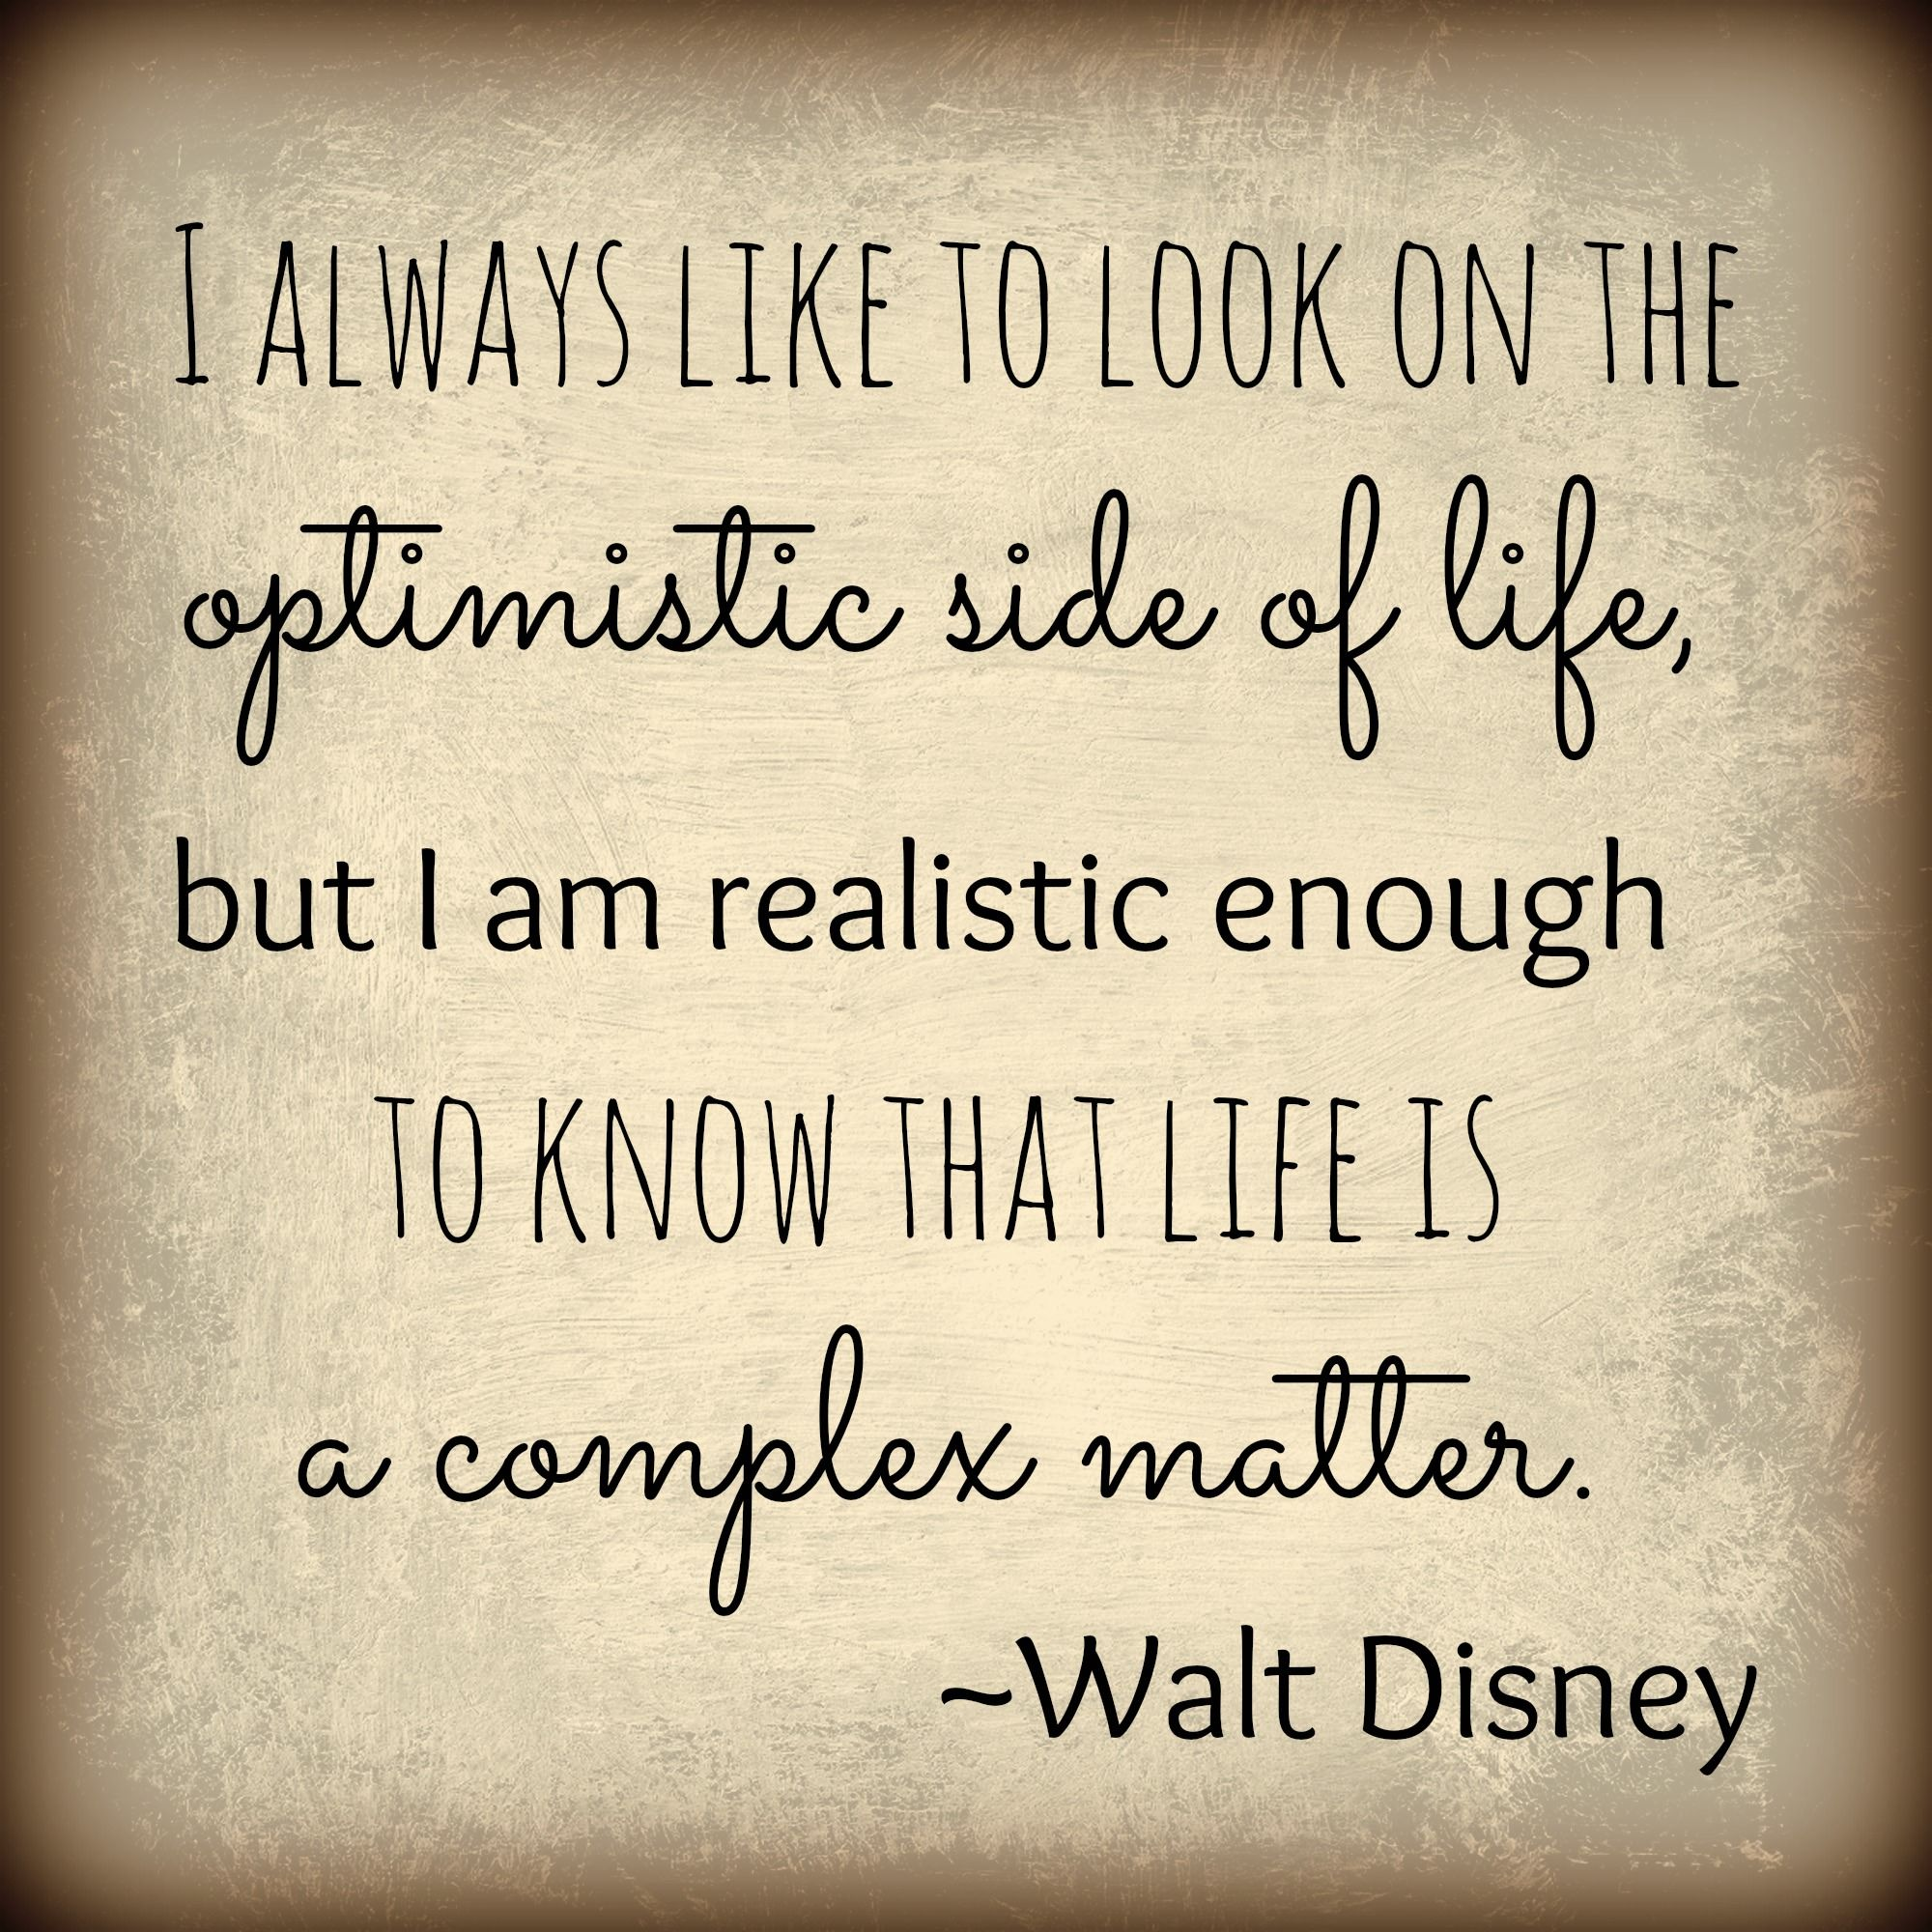 Walt Disney Quotes About Life It's Always Best To Be Positive But Some Times Life Gets A Little